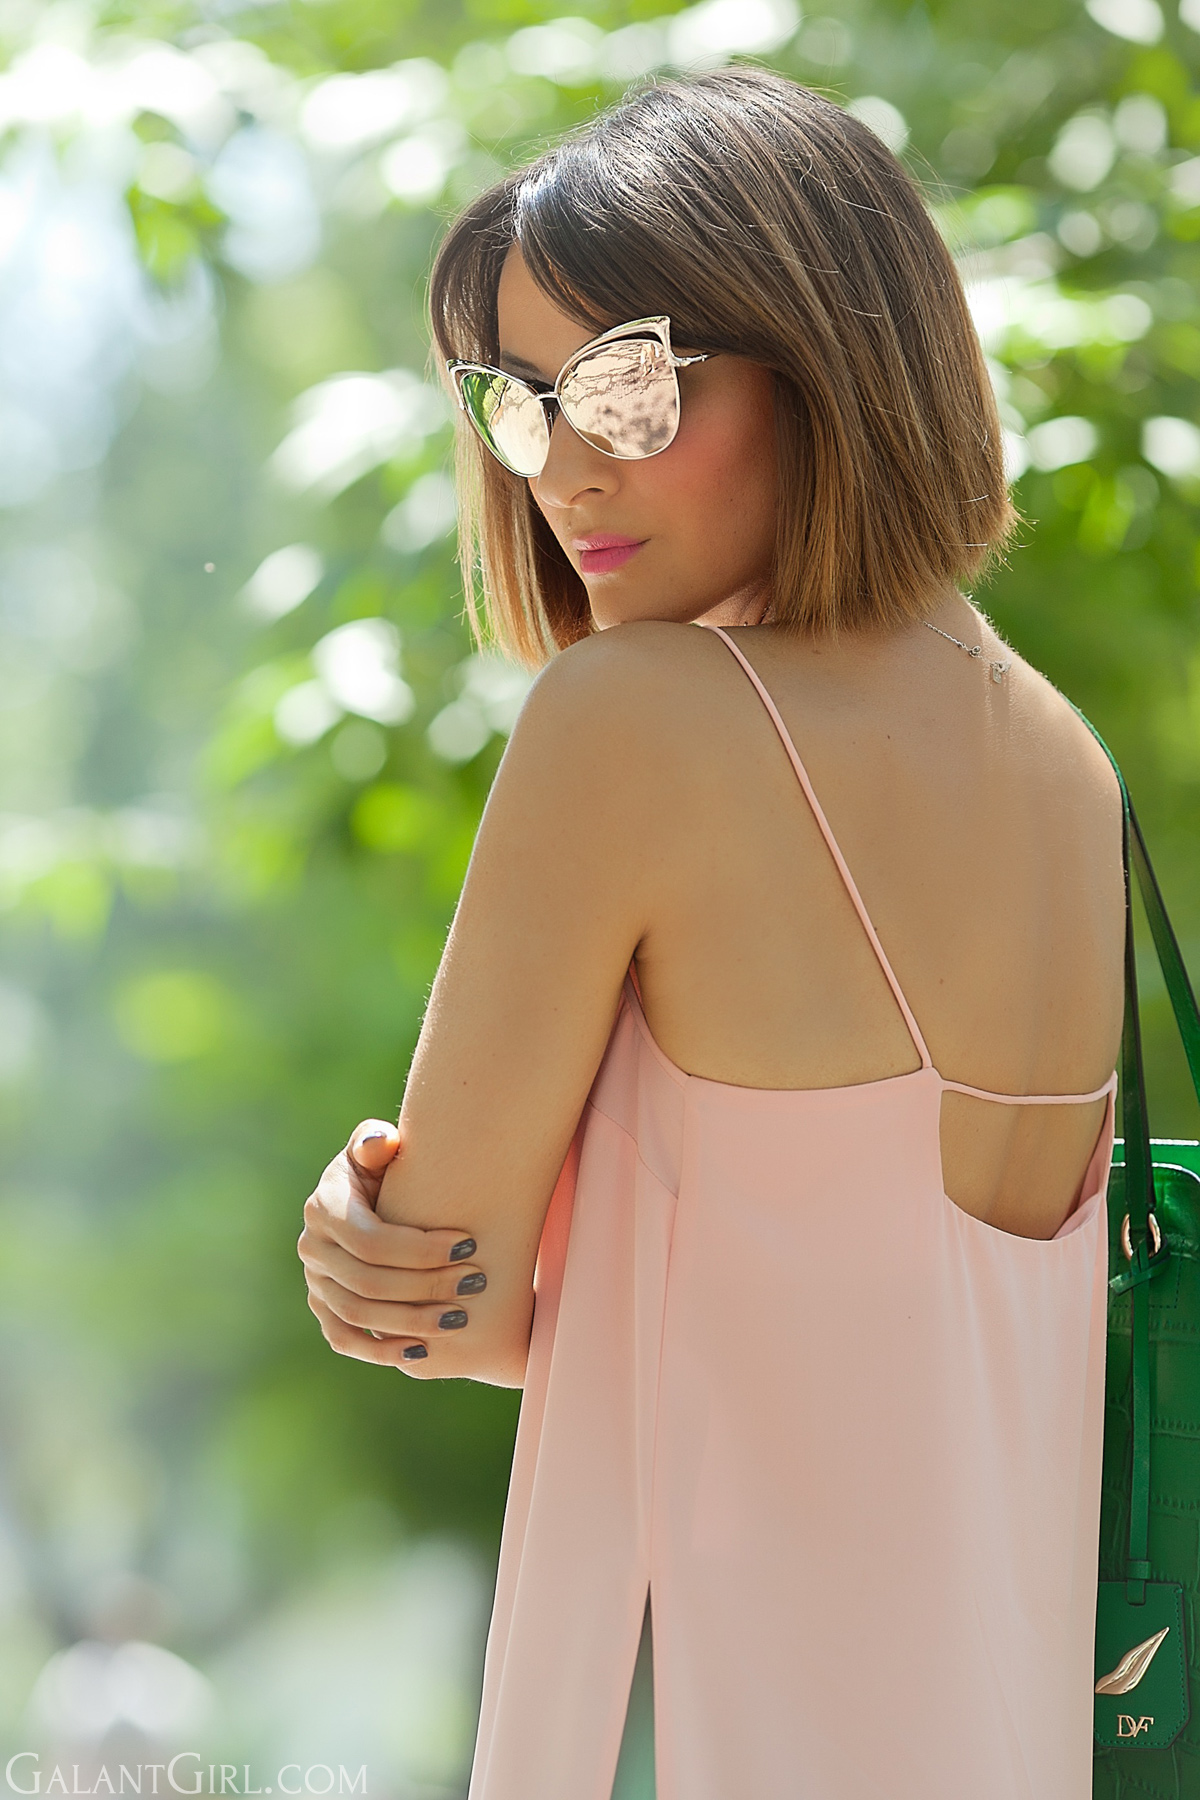 summer-outfit-fashion-blogger-galant-girl